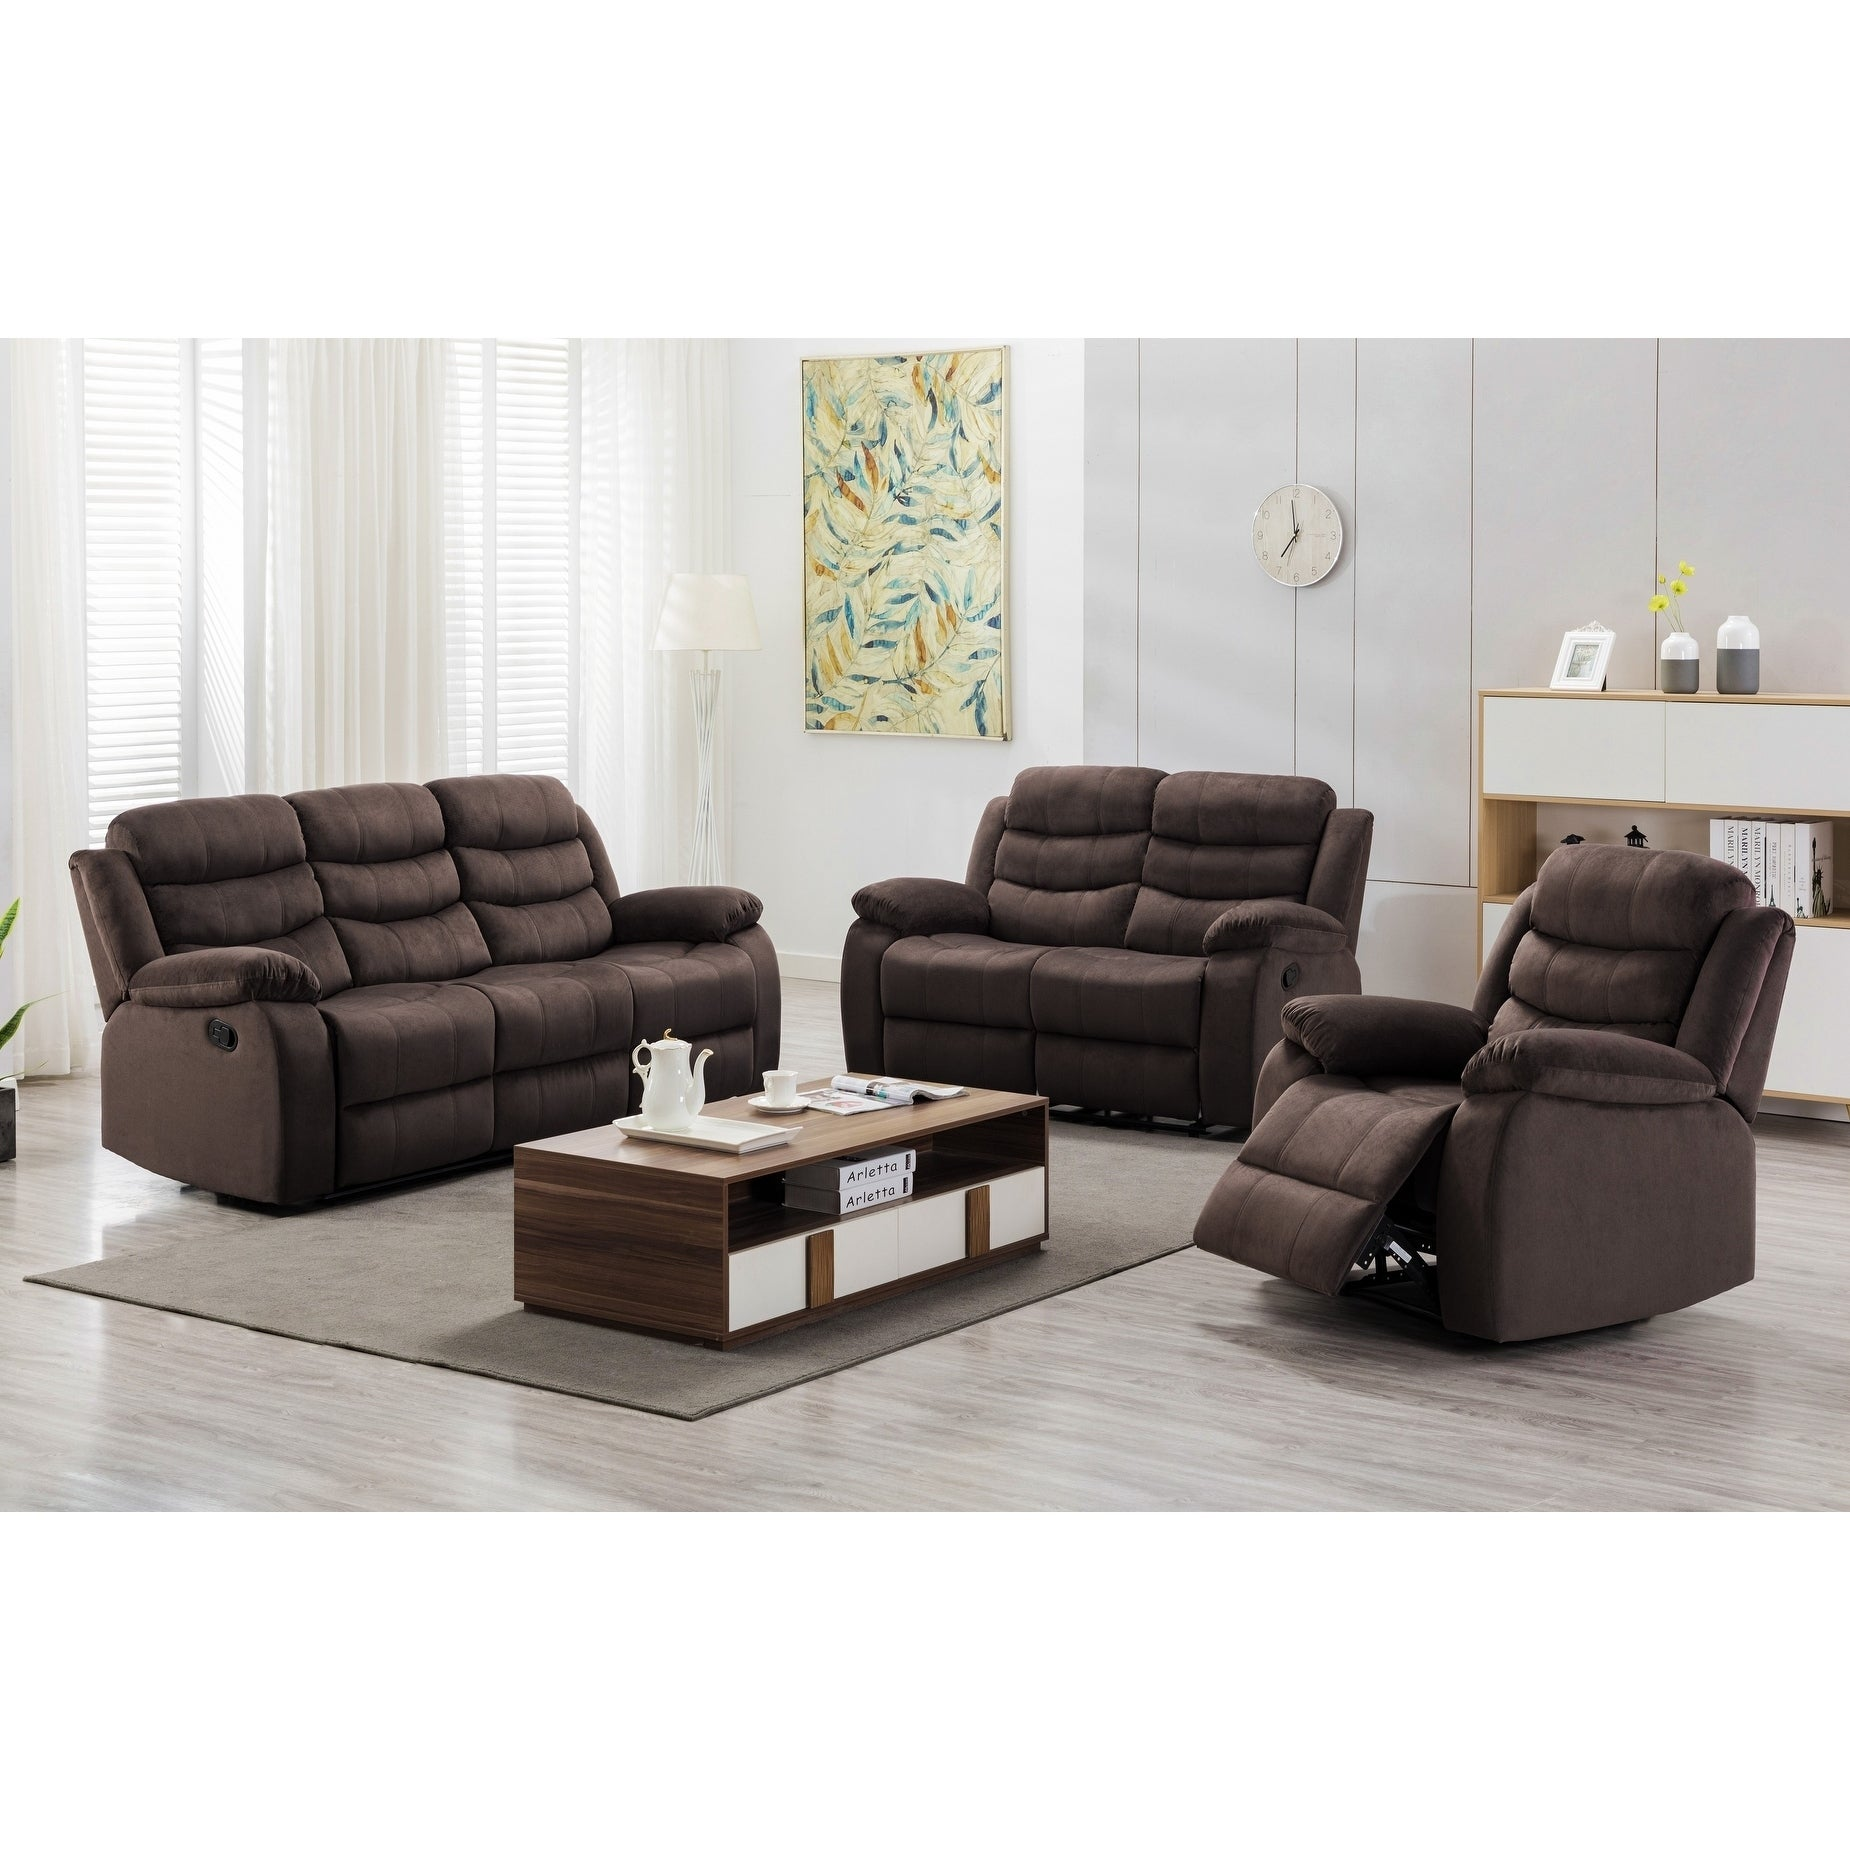 Miraculous Medved 3 Piece Suede Reclining Living Room Set Evergreenethics Interior Chair Design Evergreenethicsorg